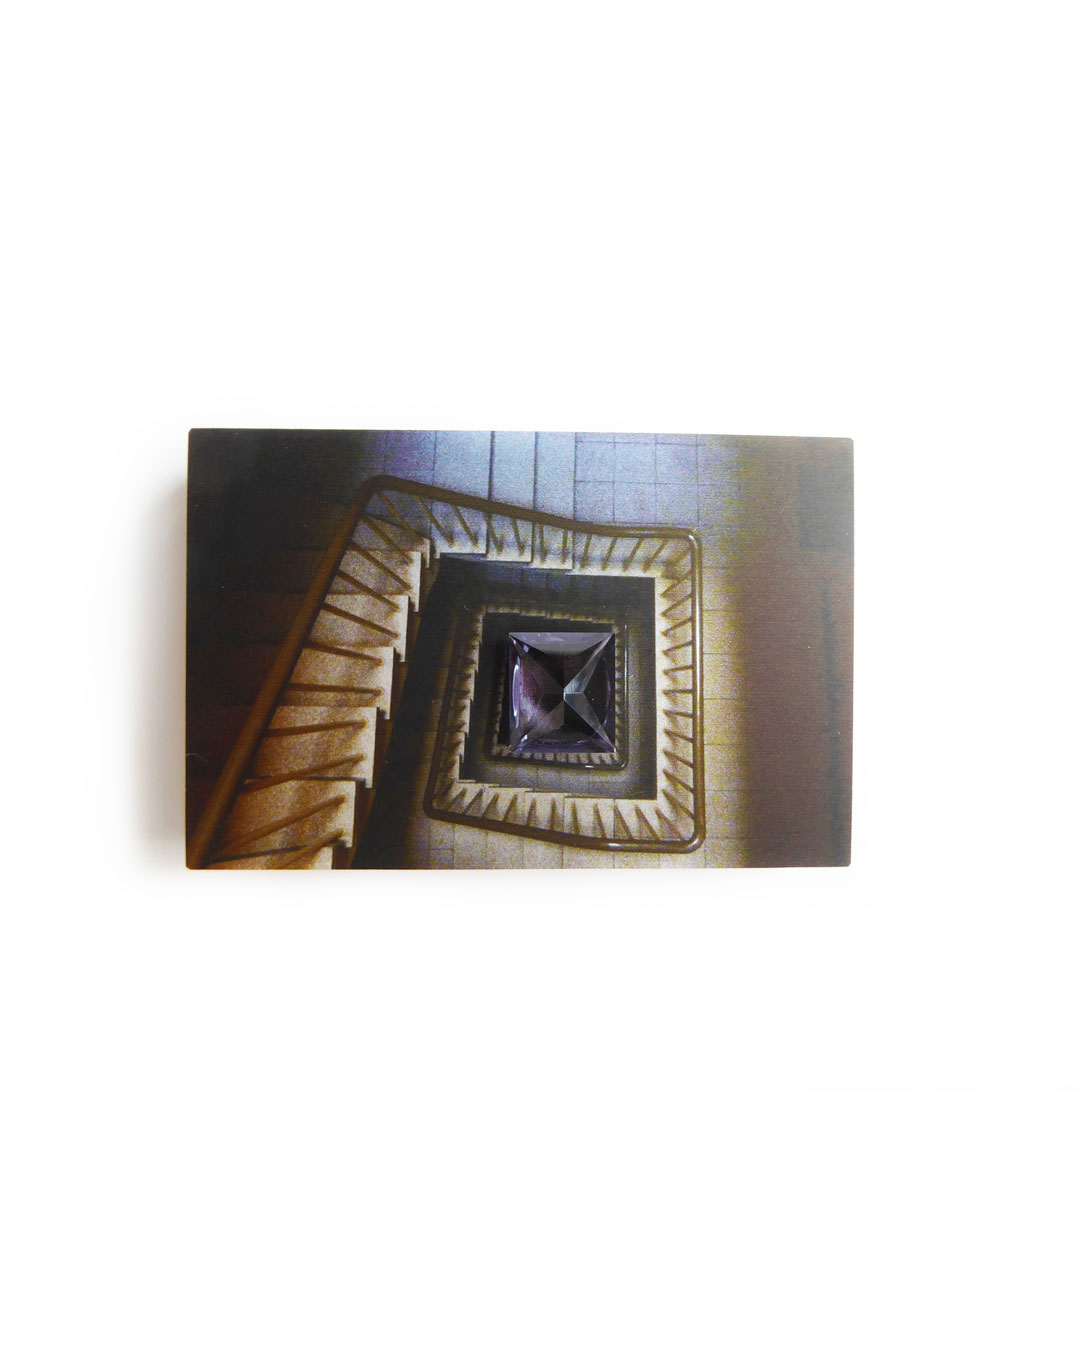 Herman Hermsen, Staircase nr. 34, 2014, brooch; print on aluminium, wood, synthetic spinel, 49 x 74 x 20 mm, €300